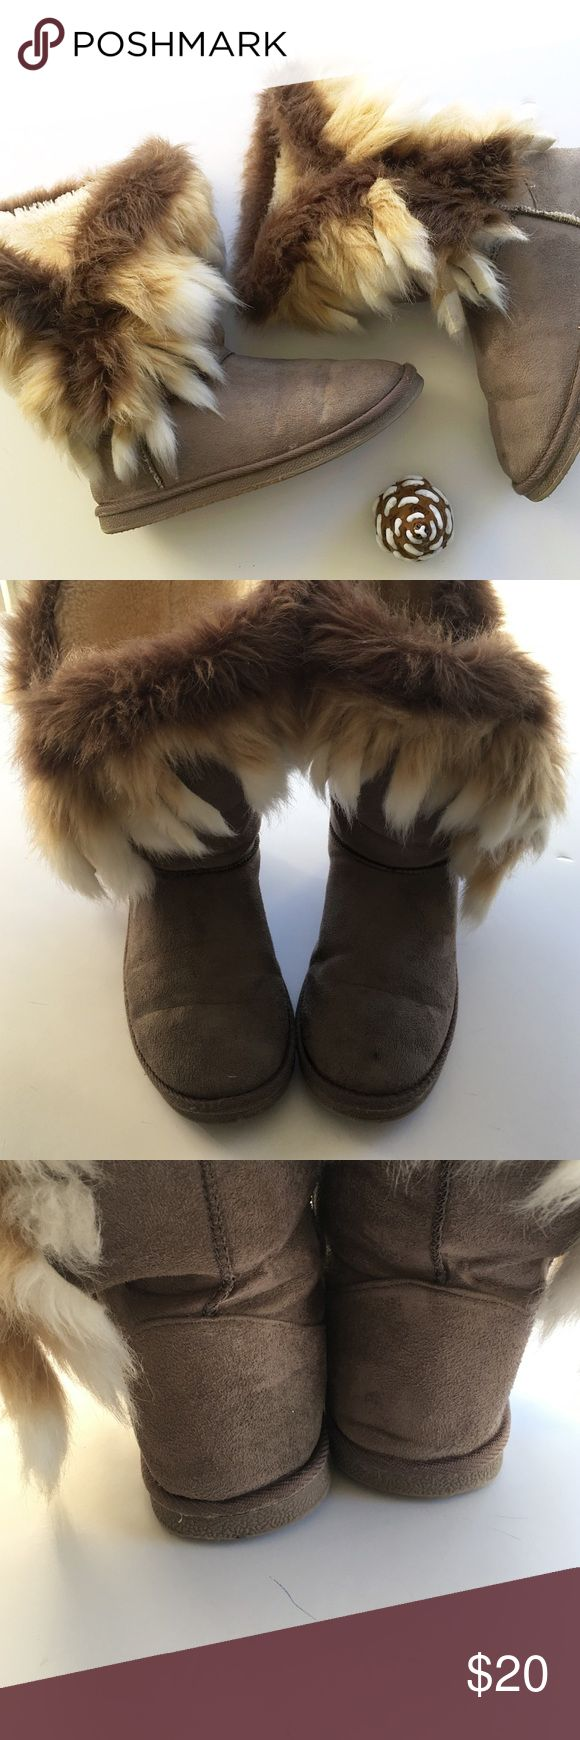 Fuzzy boots 🌸excellent used condition 👌🏼 🌸measurements upon request  🌸NO TRADING  🌸BUNDLE and get 30% off any two items 😍 🌸any other questions comment below JustFab Shoes Winter & Rain Boots